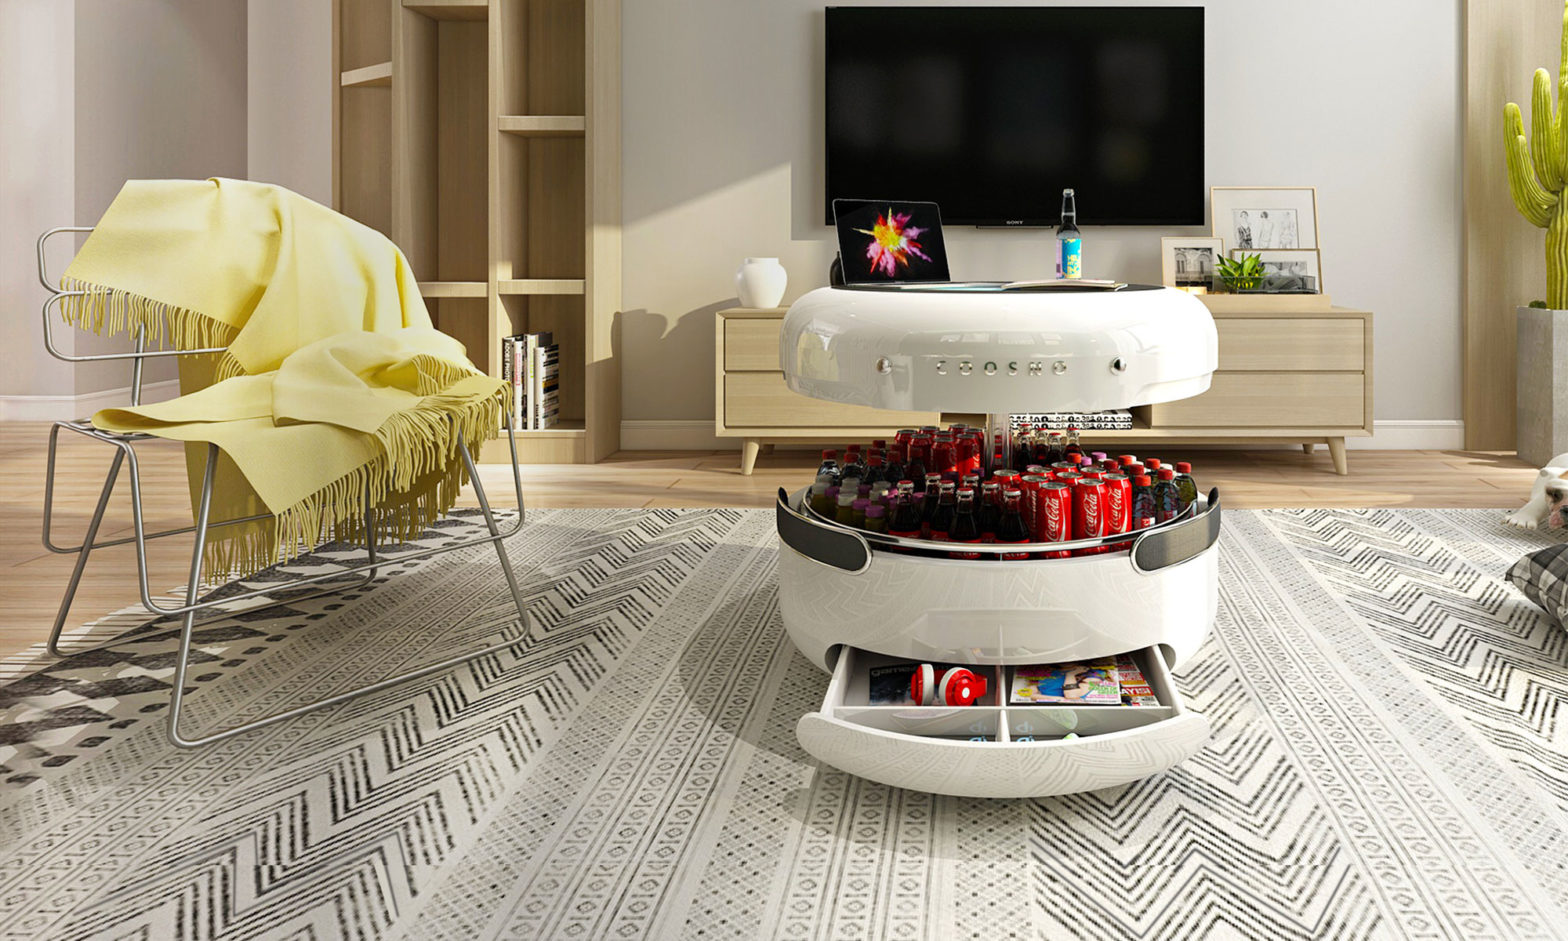 Coosno Refrigerator Coffee Table Hybrid